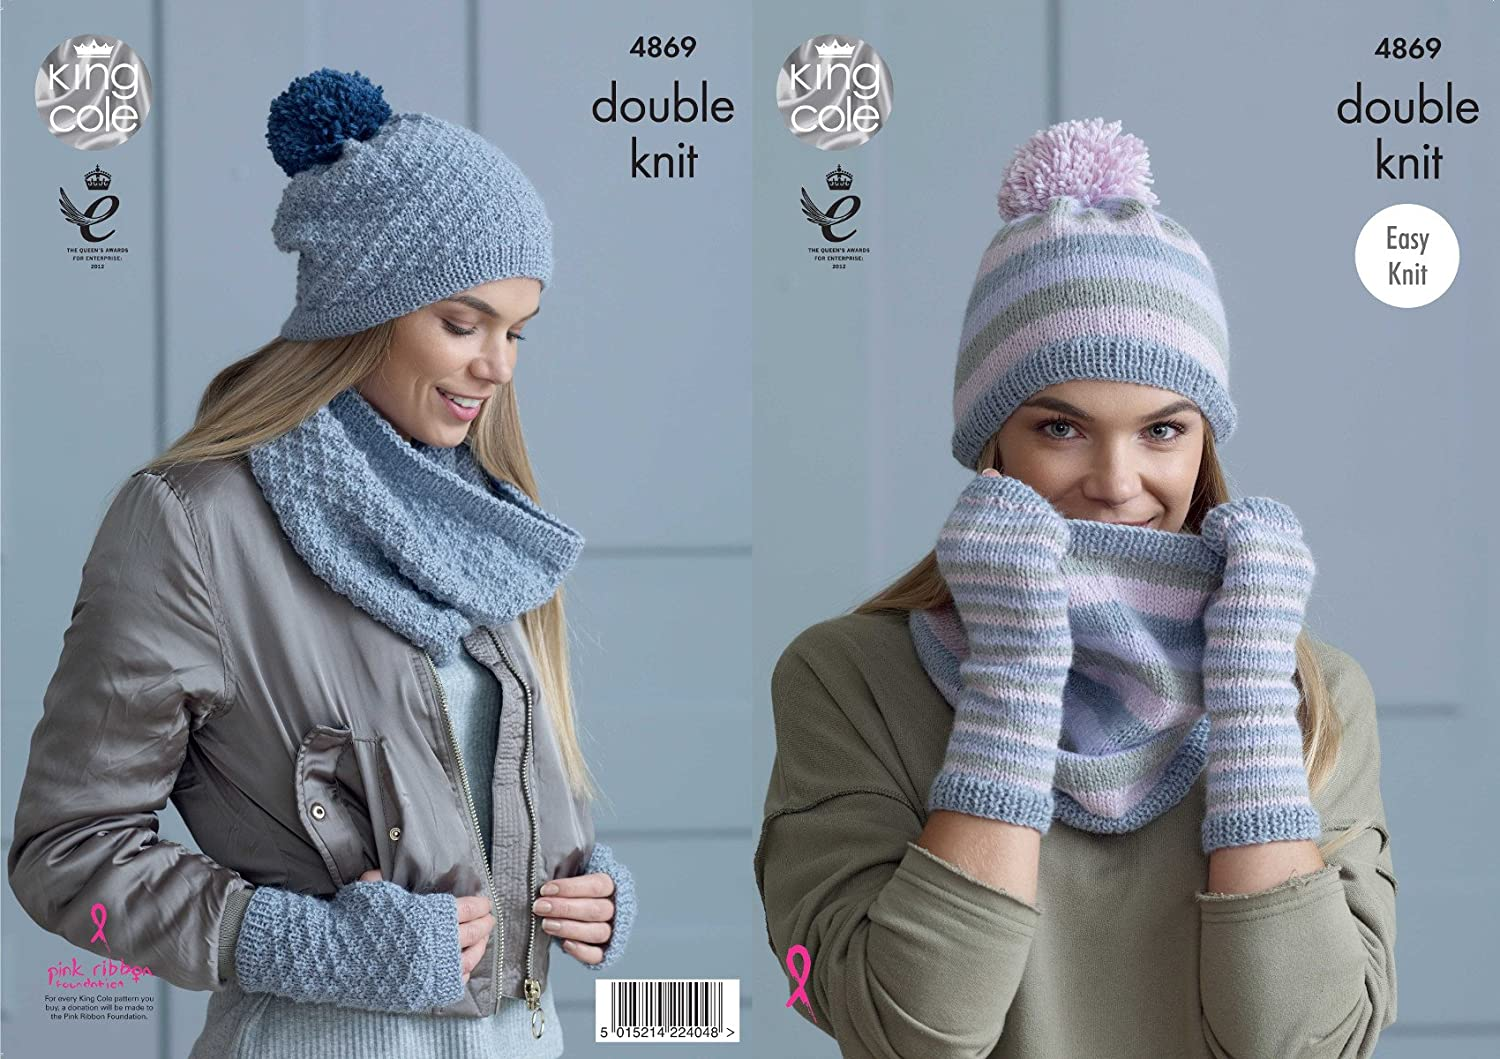 King Cole Ladies Double Knitting Pattern Easy Knit Womens Snoods Hats & Mitts (4869)